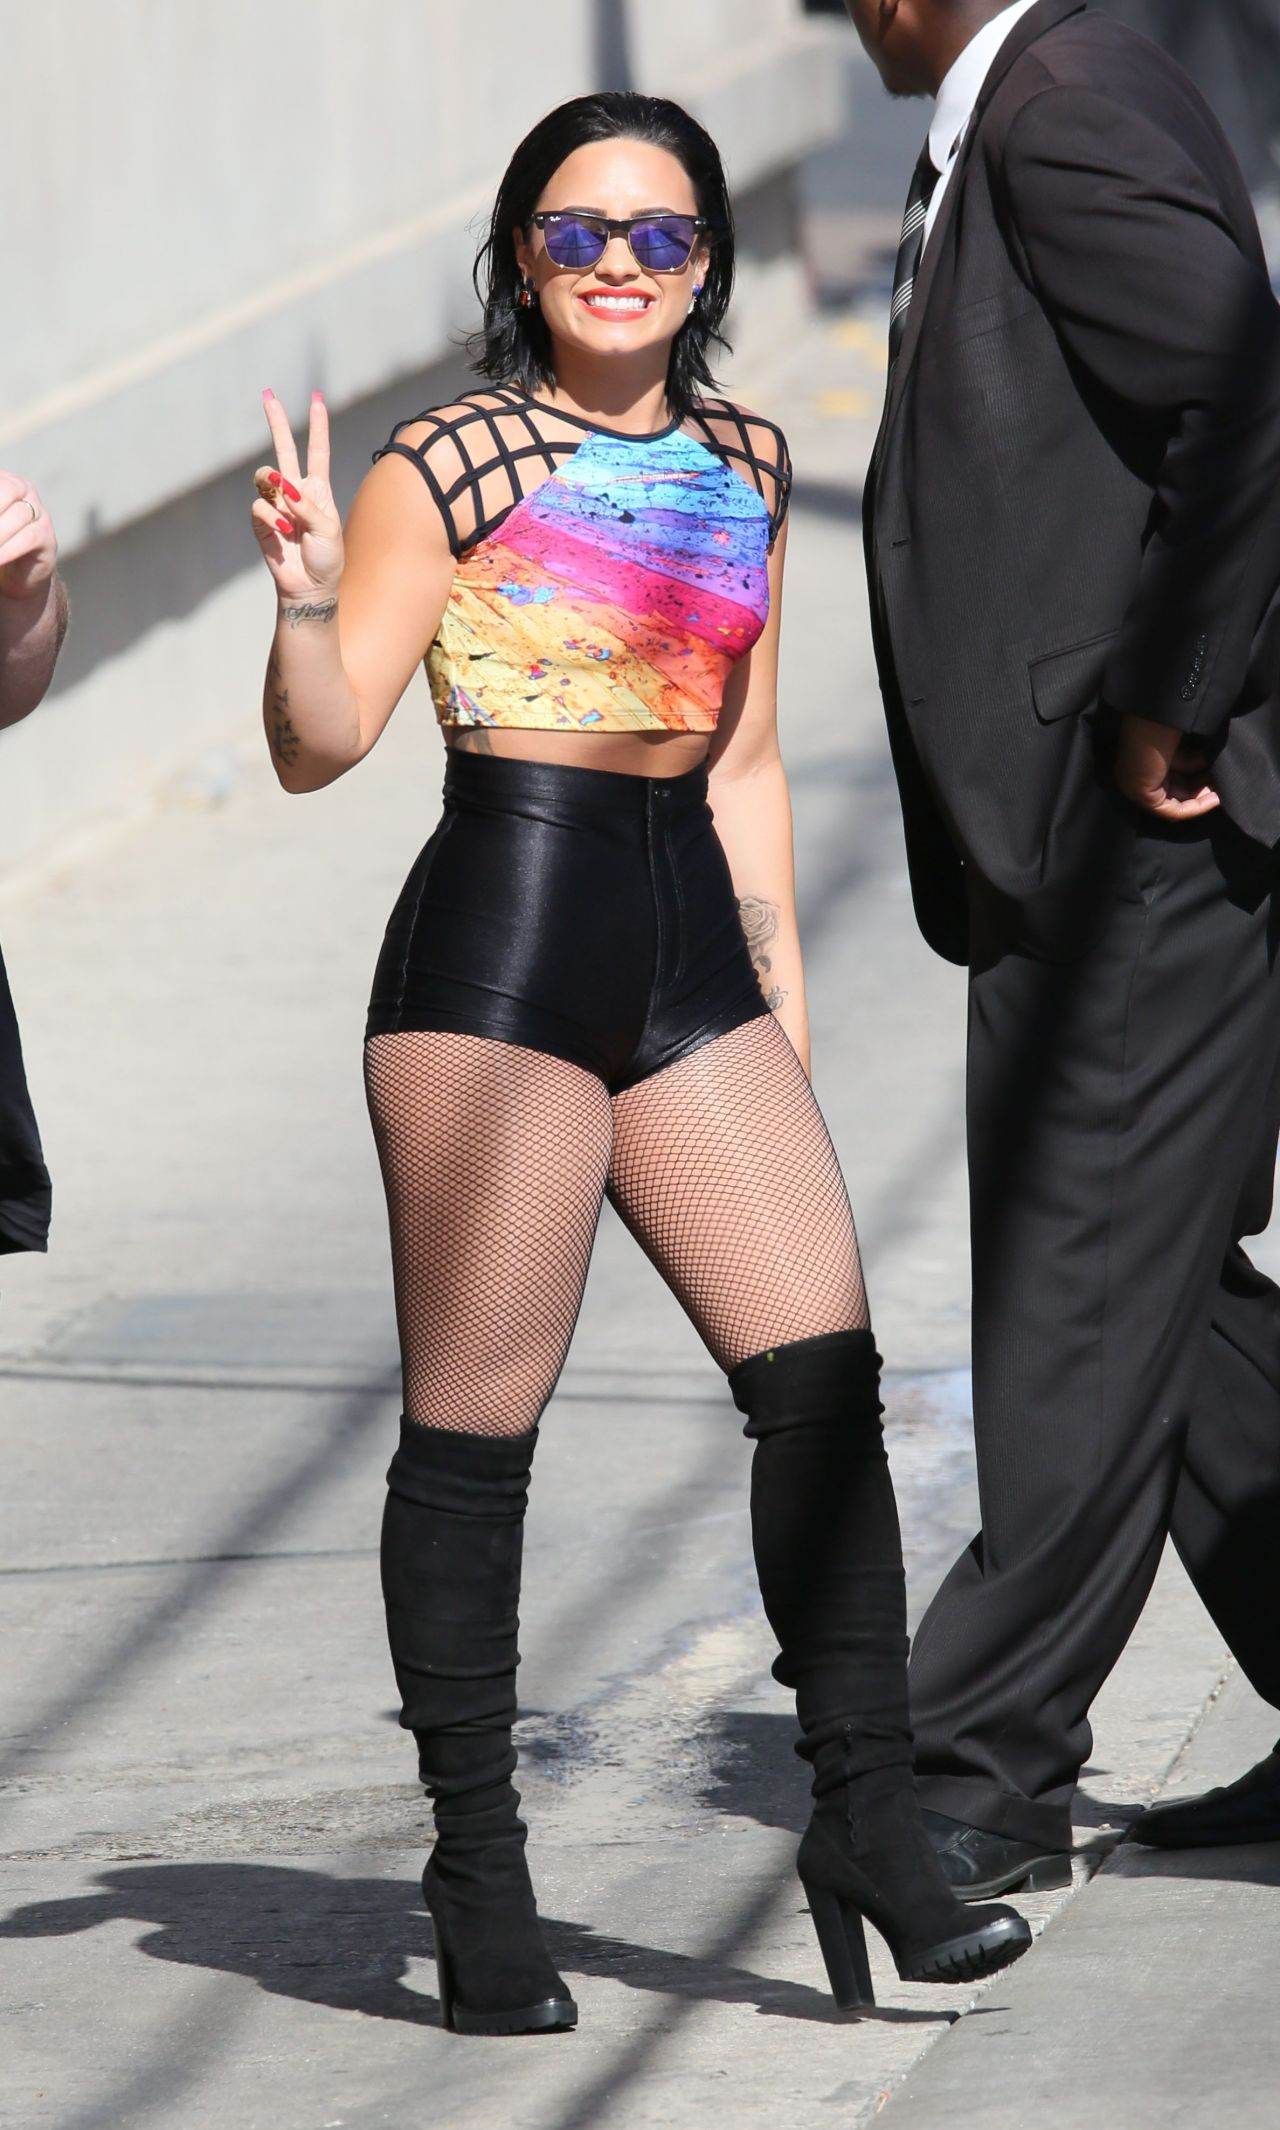 demi-lovato-at-jimmy-kimmel-live-in-hollywood-august-2015_30